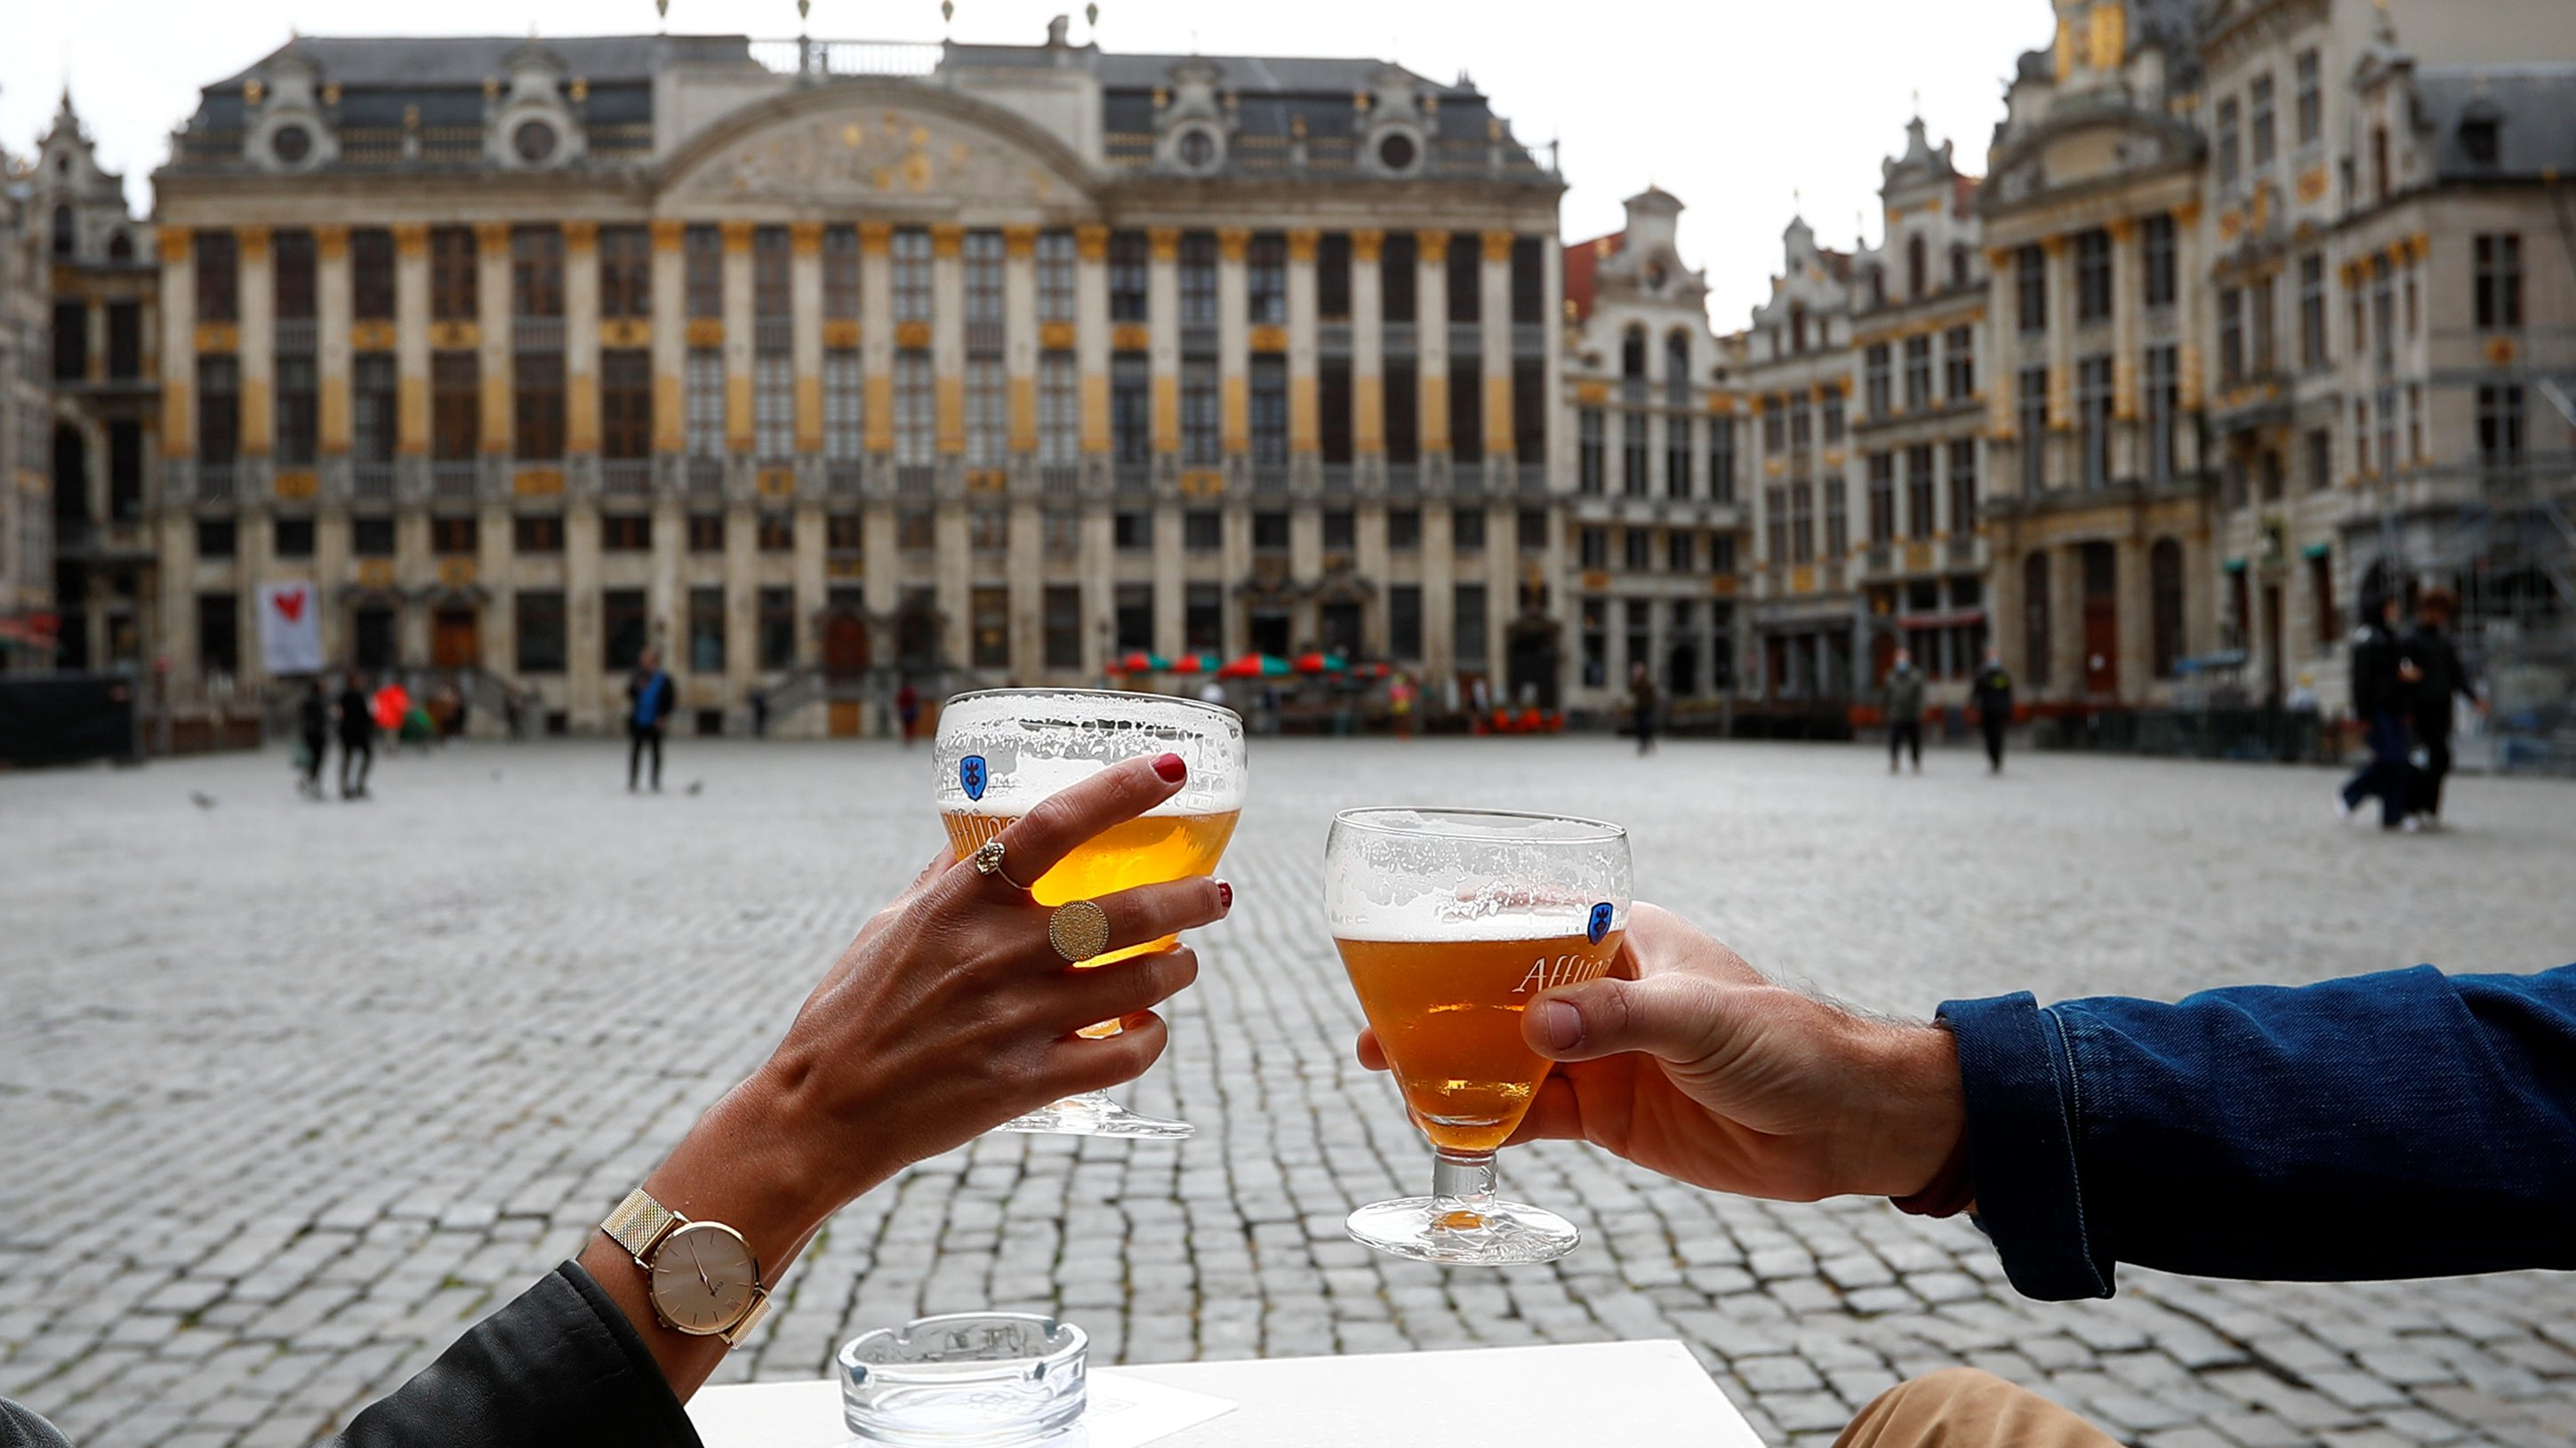 Two people having a beer in a square in Brussels